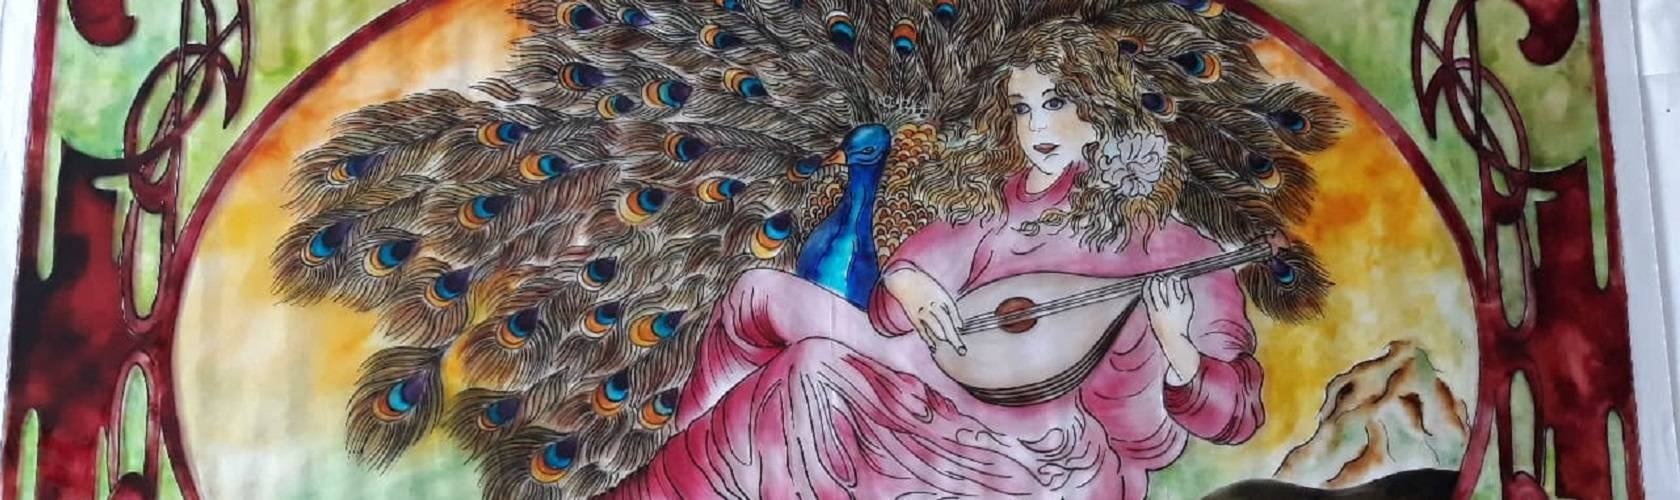 "Extract from the painting ""Peacock"". Aranka Mágori's artwork."